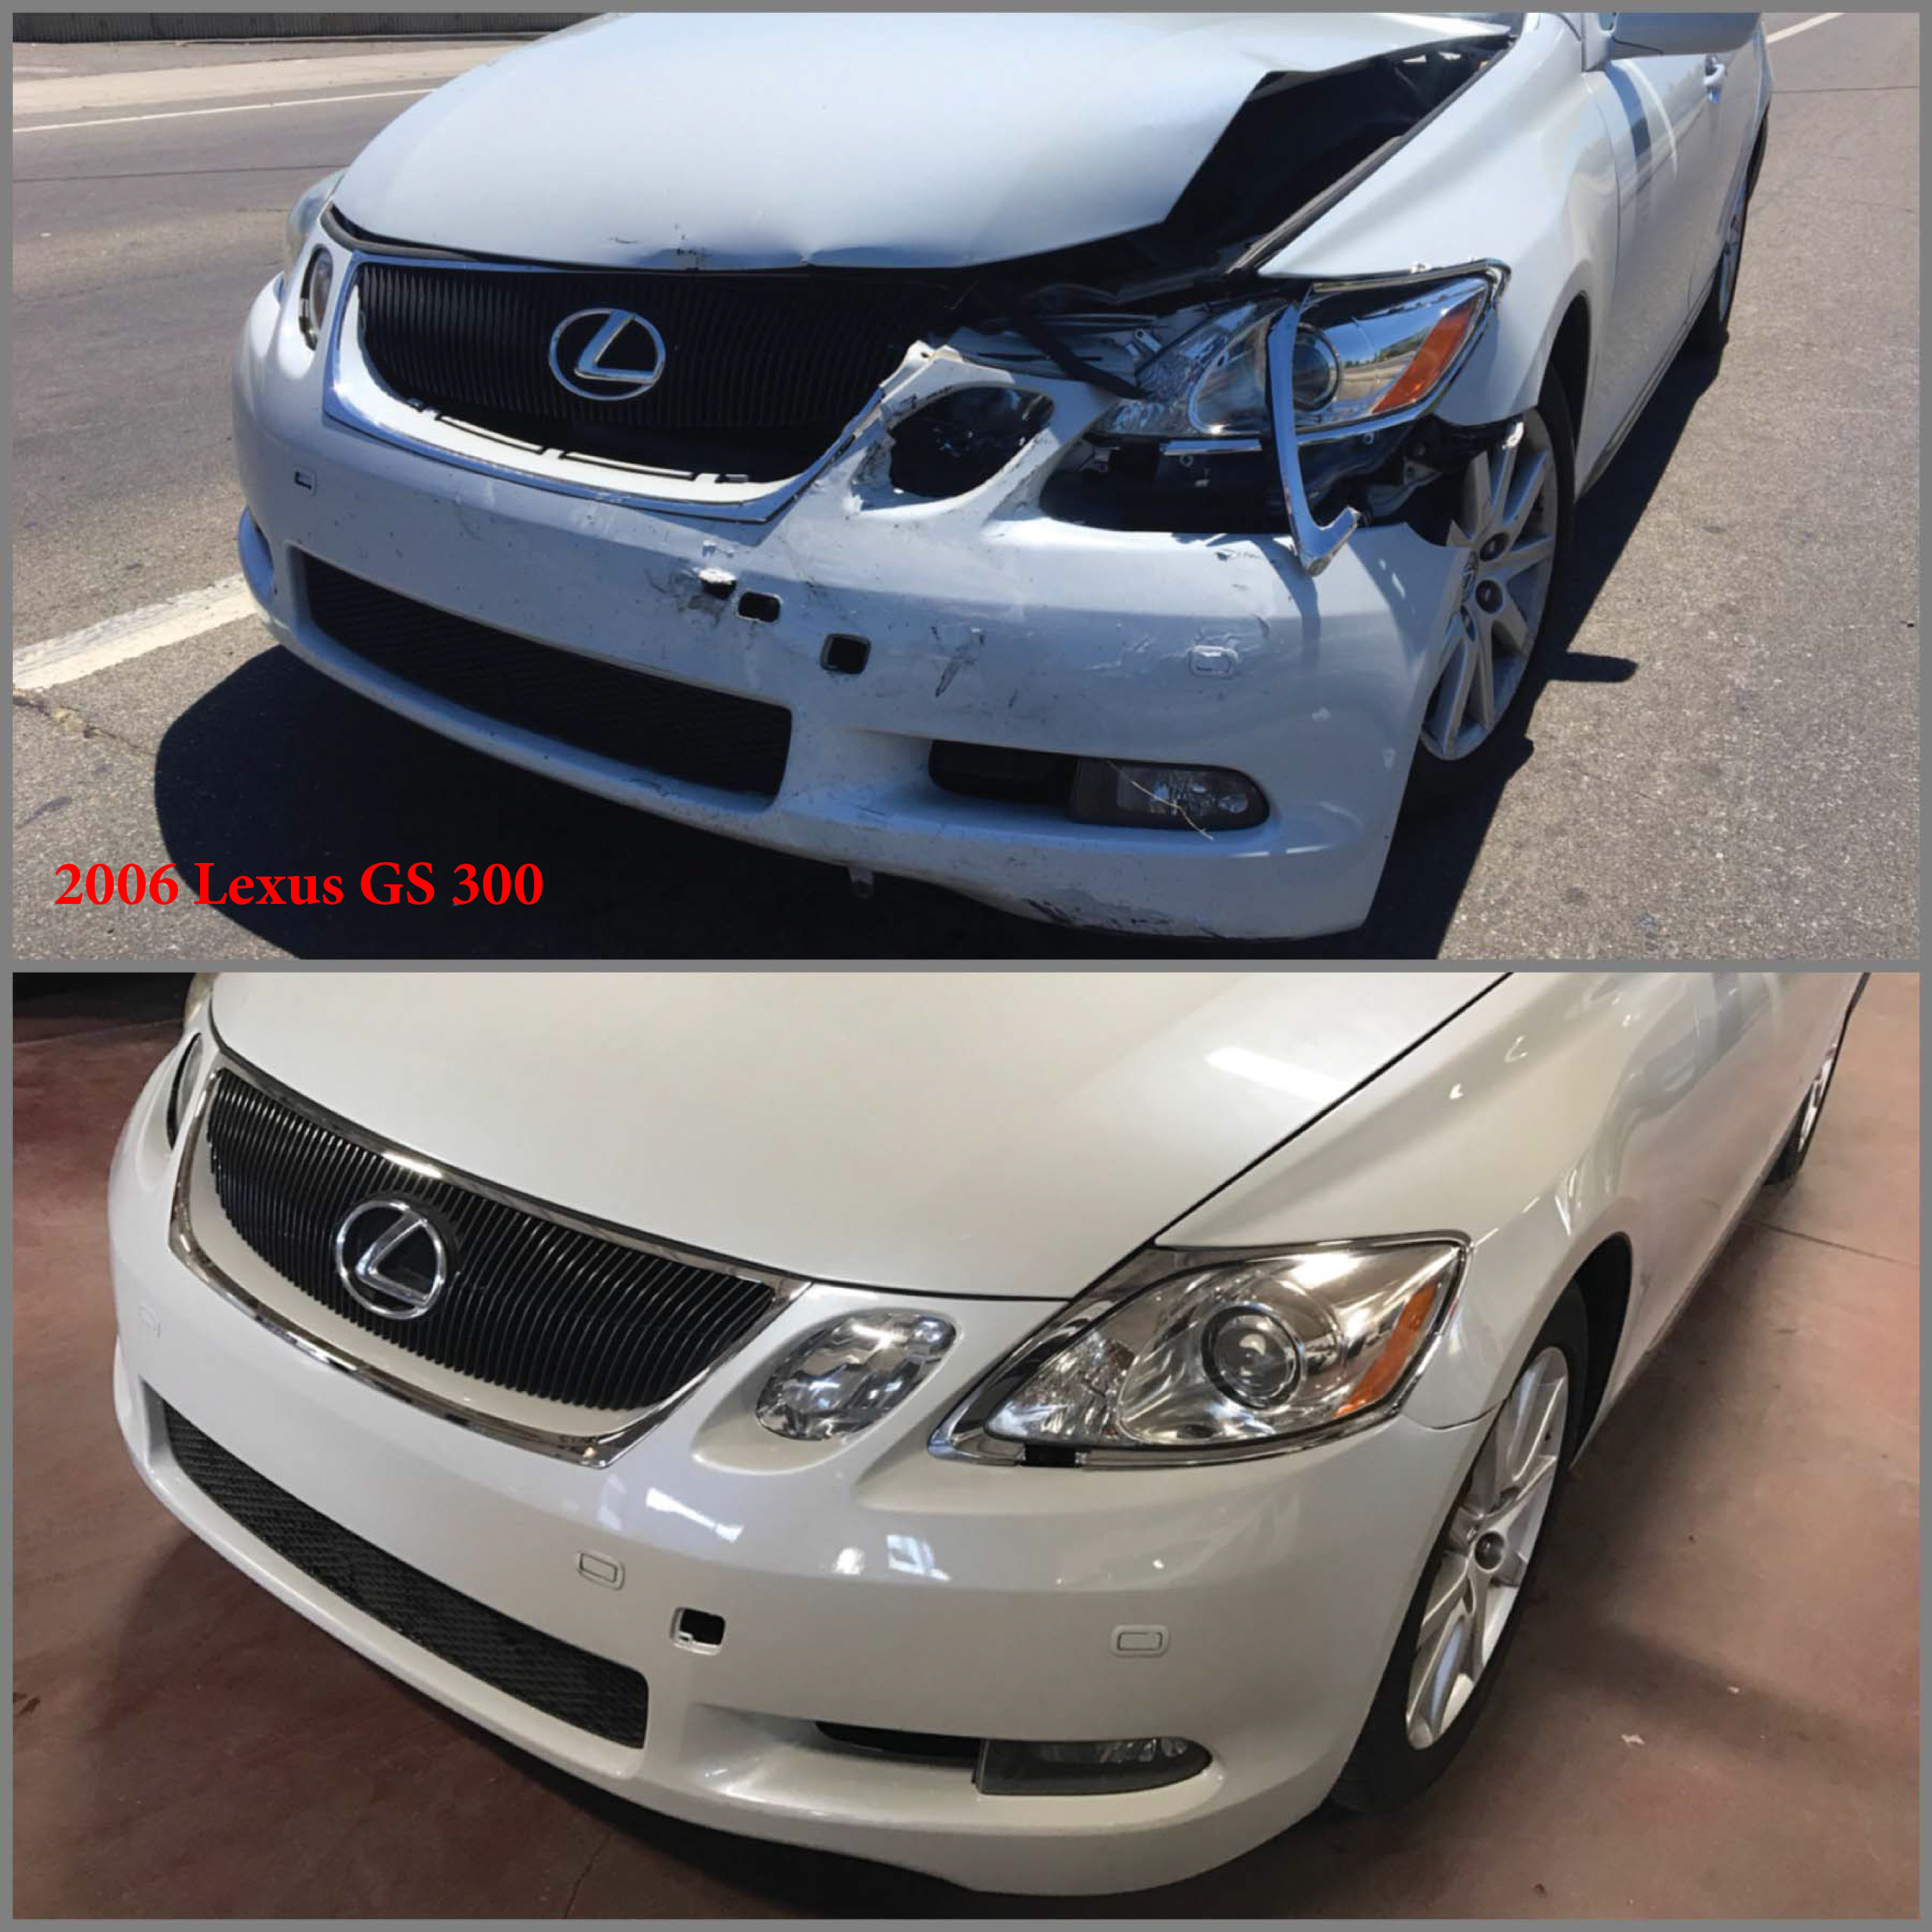 Lexus GS 300 Repair Paint Job RideShare Program